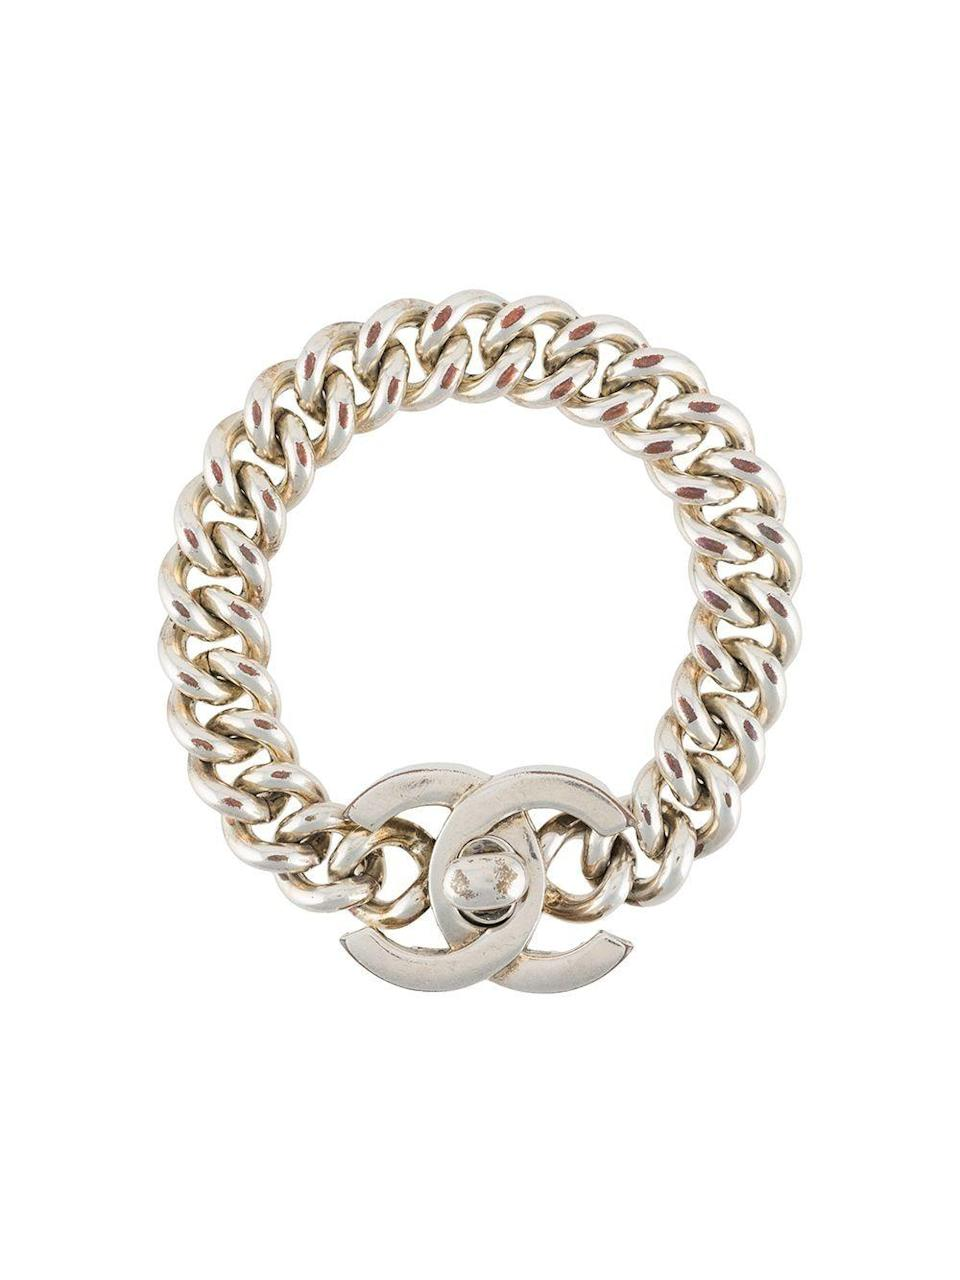 """<p><strong>Chanel Pre-owned</strong></p><p>farfetch.com</p><p><strong>$1707.00</strong></p><p><a href=""""https://go.redirectingat.com?id=74968X1596630&url=https%3A%2F%2Fwww.farfetch.com%2Fshopping%2Fwomen%2Fchanel-pre-owned-1990-cc-turnlock-logo-bracelet-item-15879138.aspx&sref=https%3A%2F%2Fwww.harpersbazaar.com%2Ffashion%2Ftrends%2Fg24061584%2Fbest-gifts-for-friends-ideas%2F"""" rel=""""nofollow noopener"""" target=""""_blank"""" data-ylk=""""slk:Shop Now"""" class=""""link rapid-noclick-resp"""">Shop Now</a></p><p>Who would say no to vintage Chanel?</p>"""